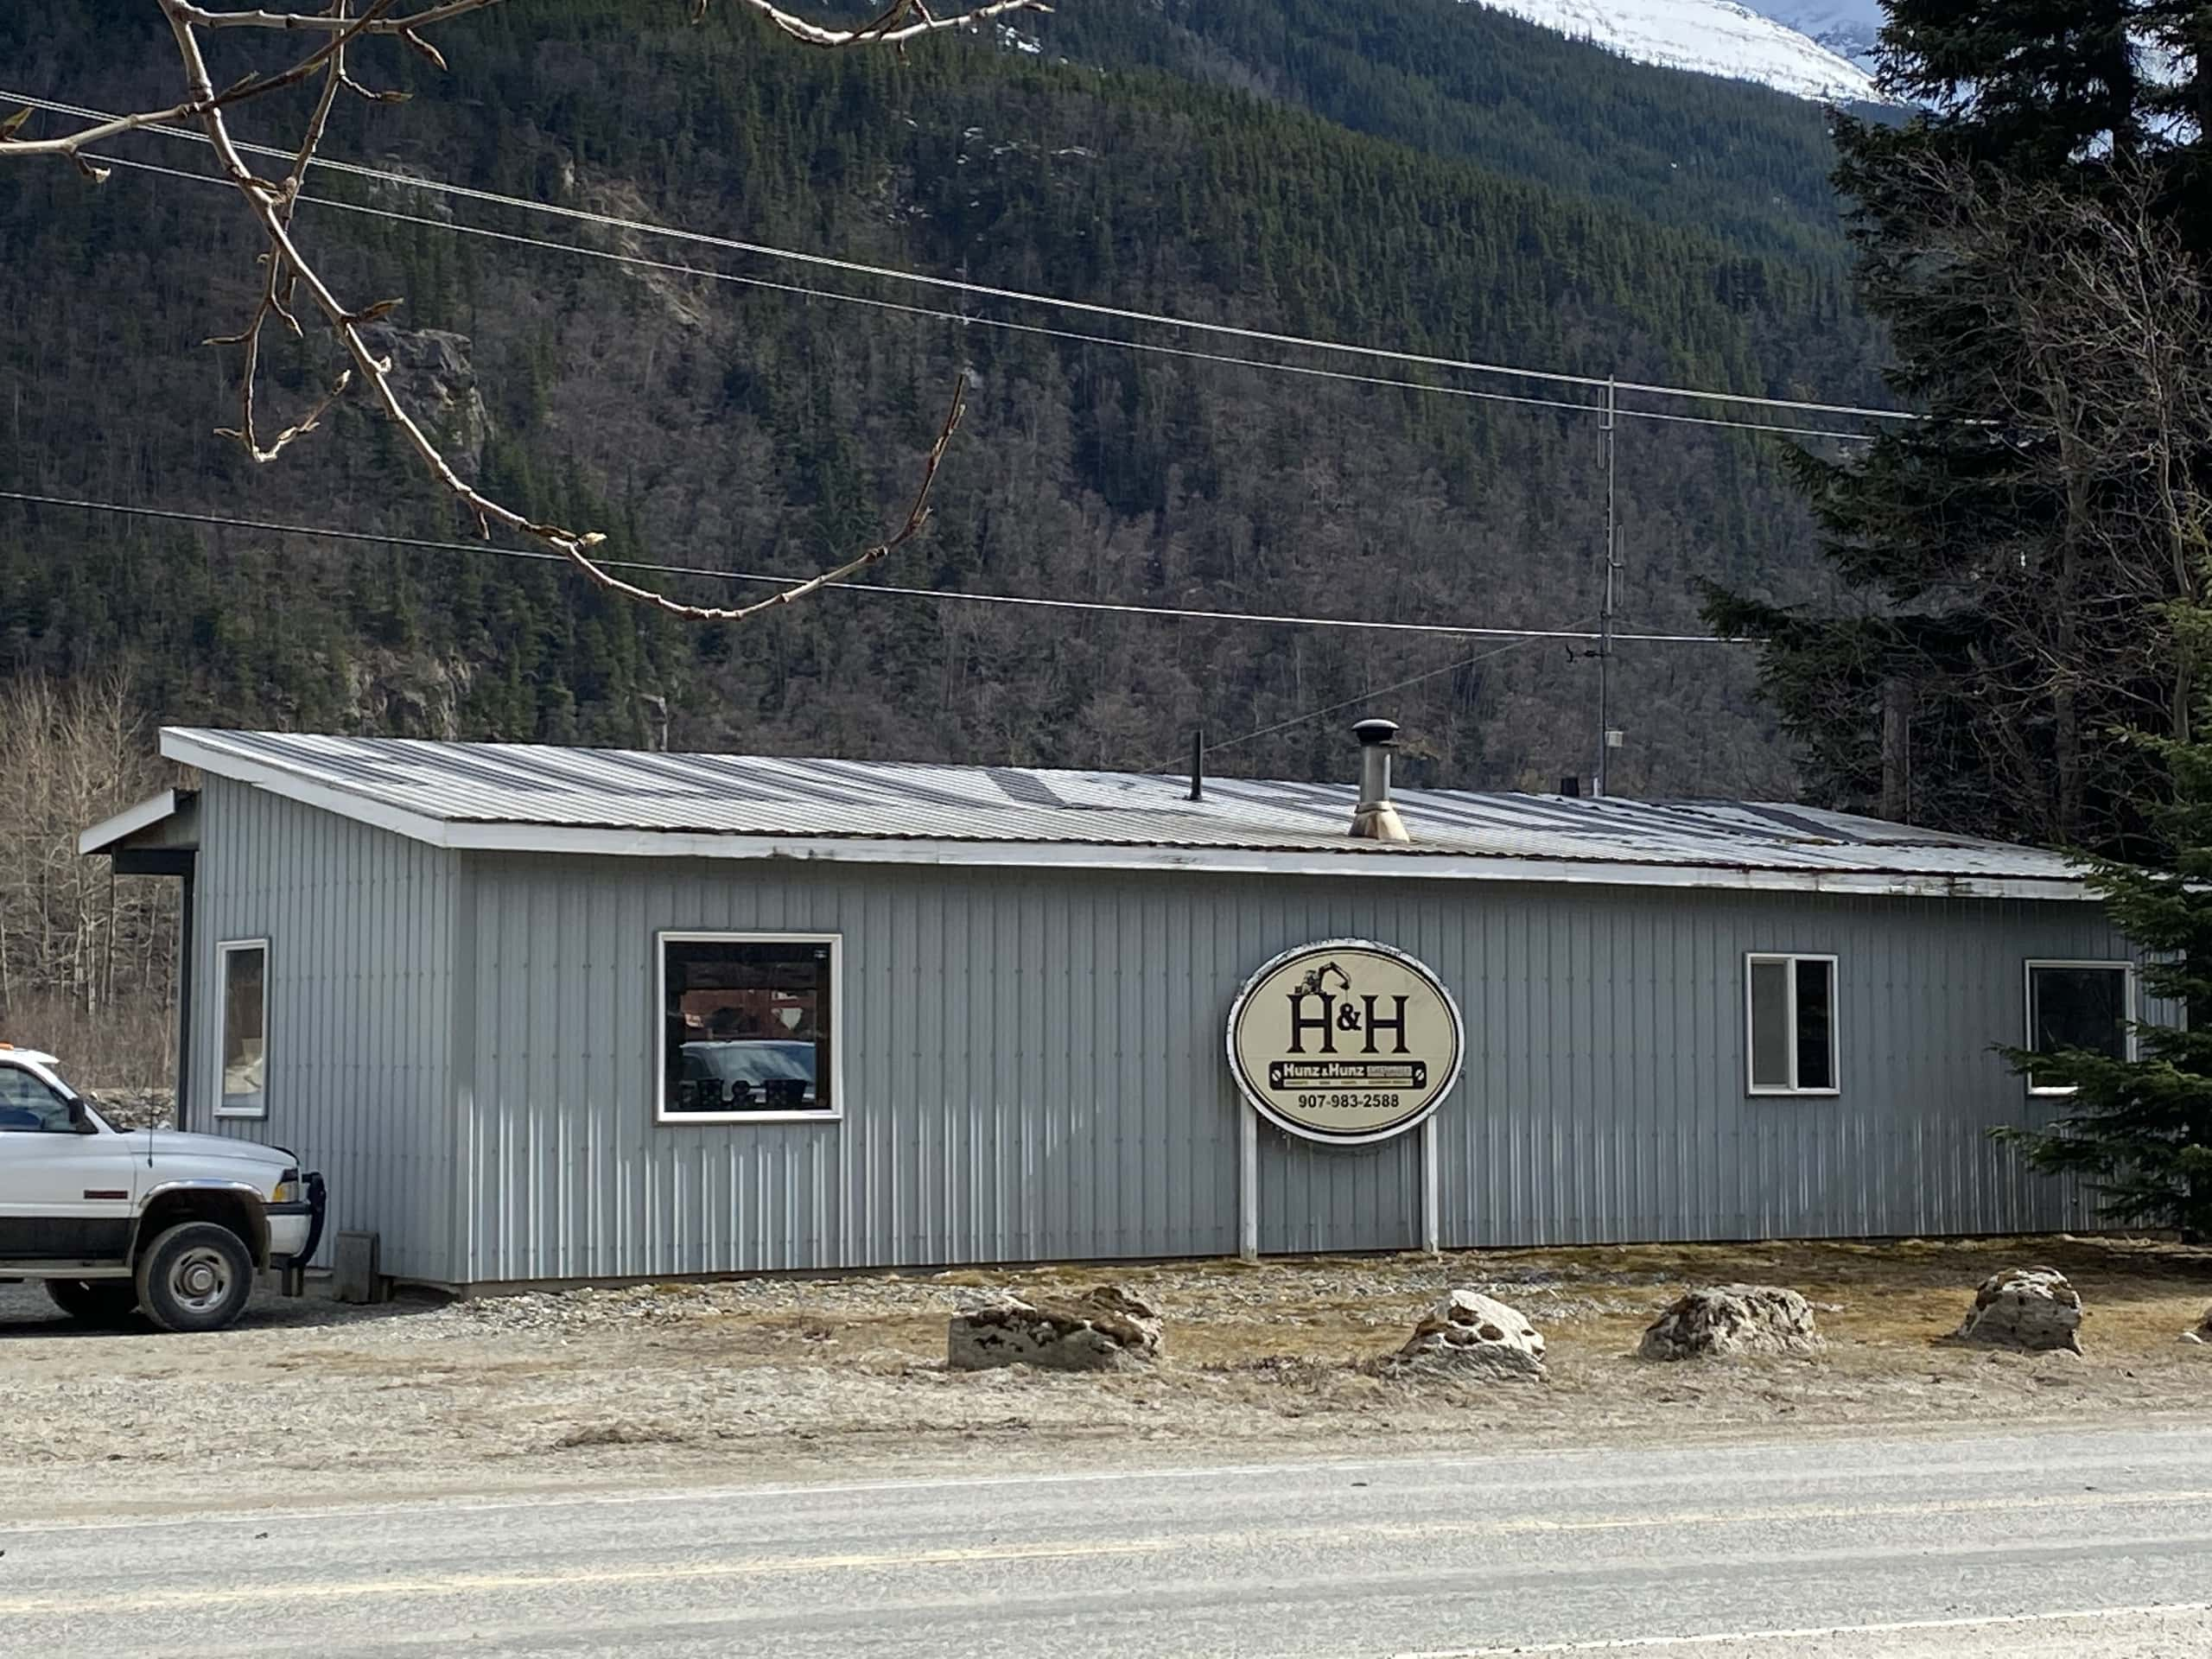 Skagway construction worker accused of fleecing elderly client